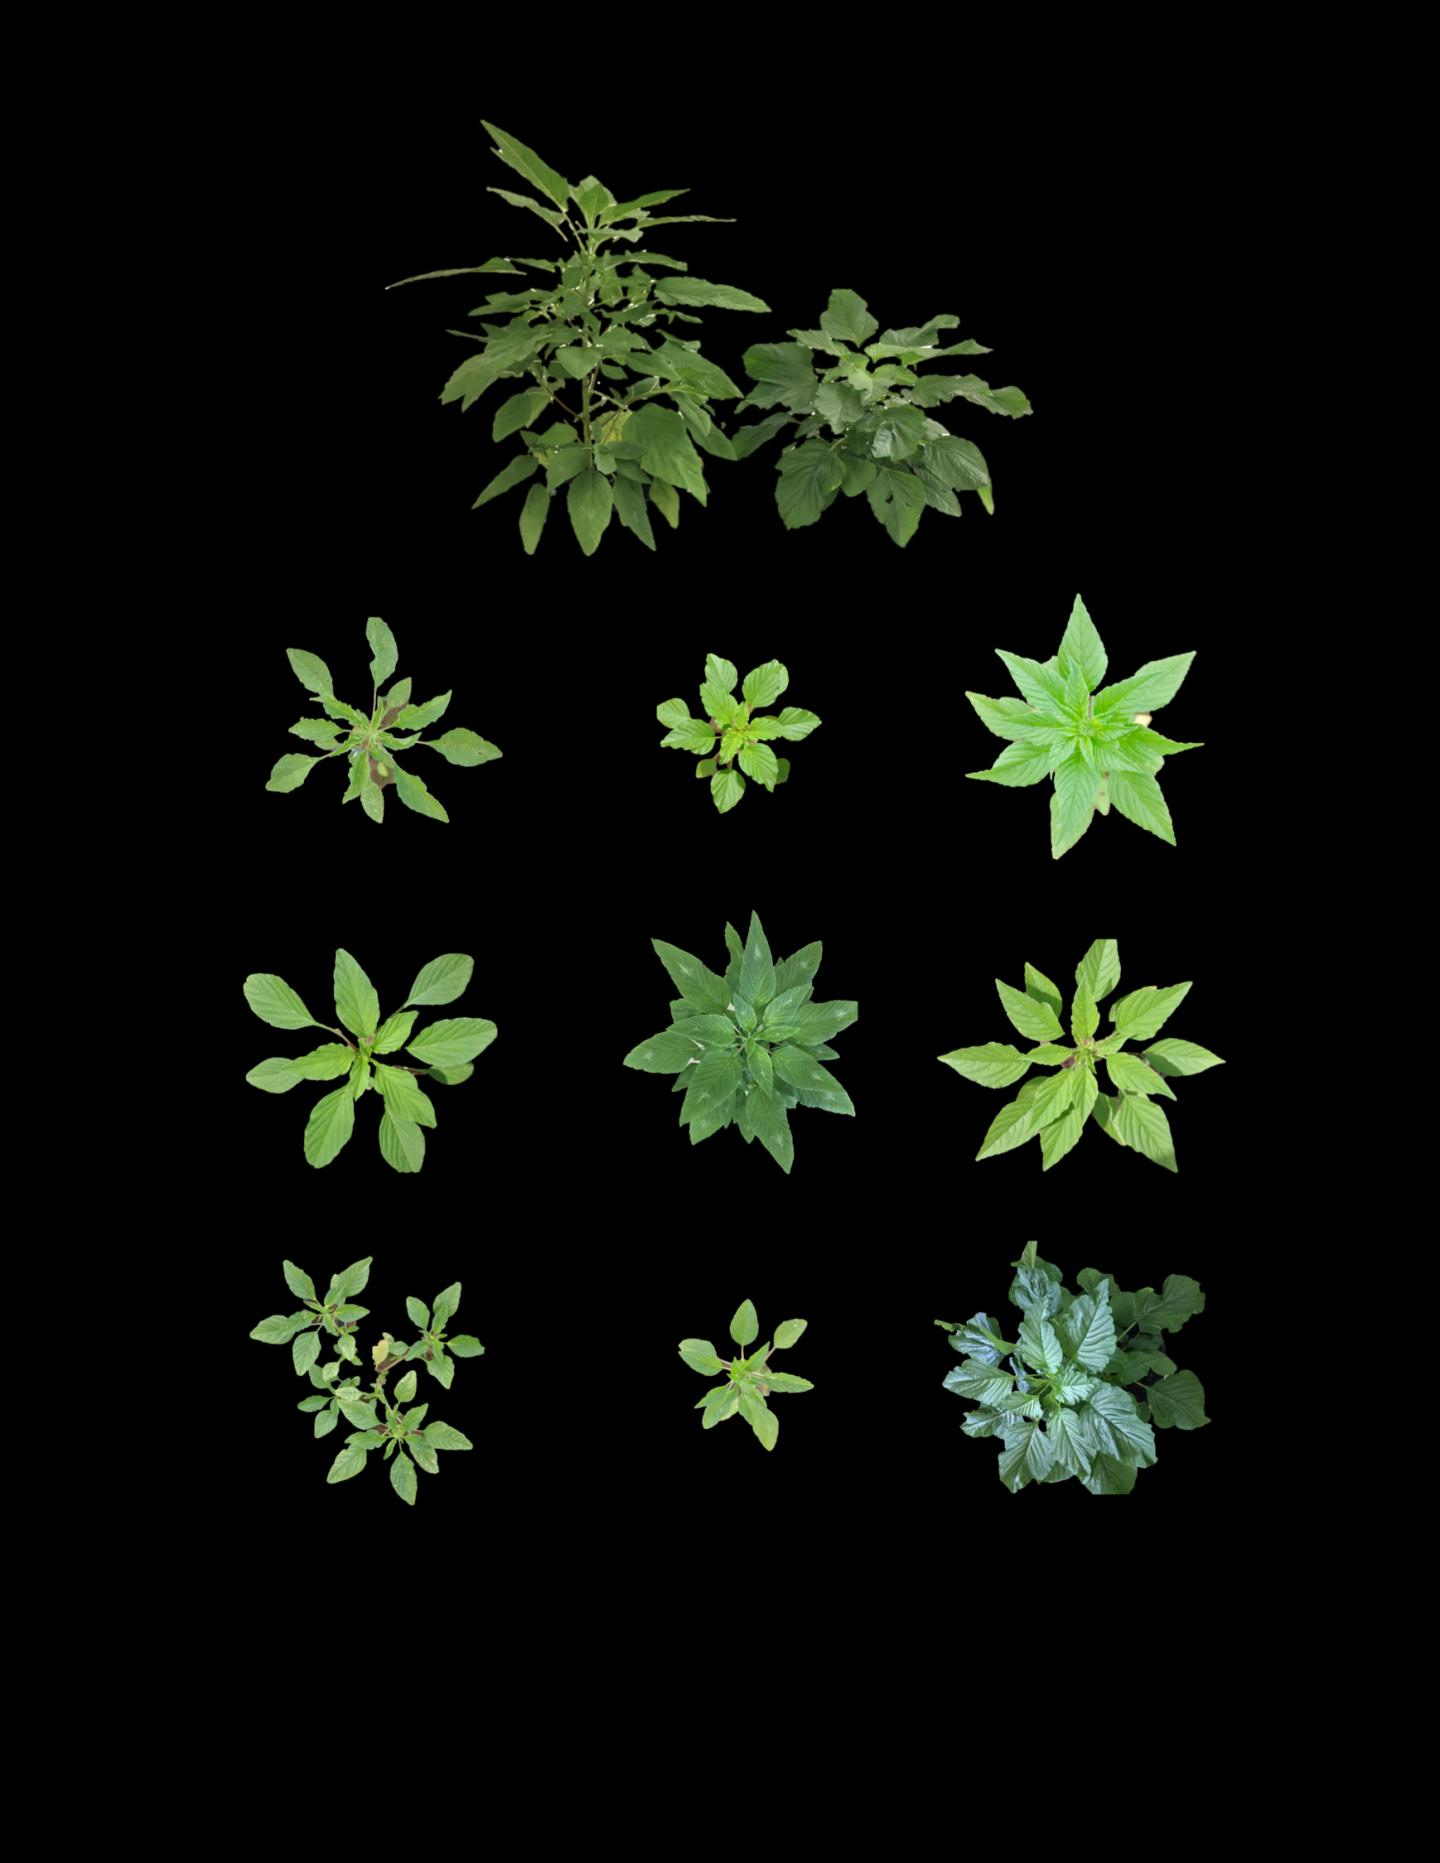 Ddiversity in Morphology that We Found Among Palmer amaranth Populations